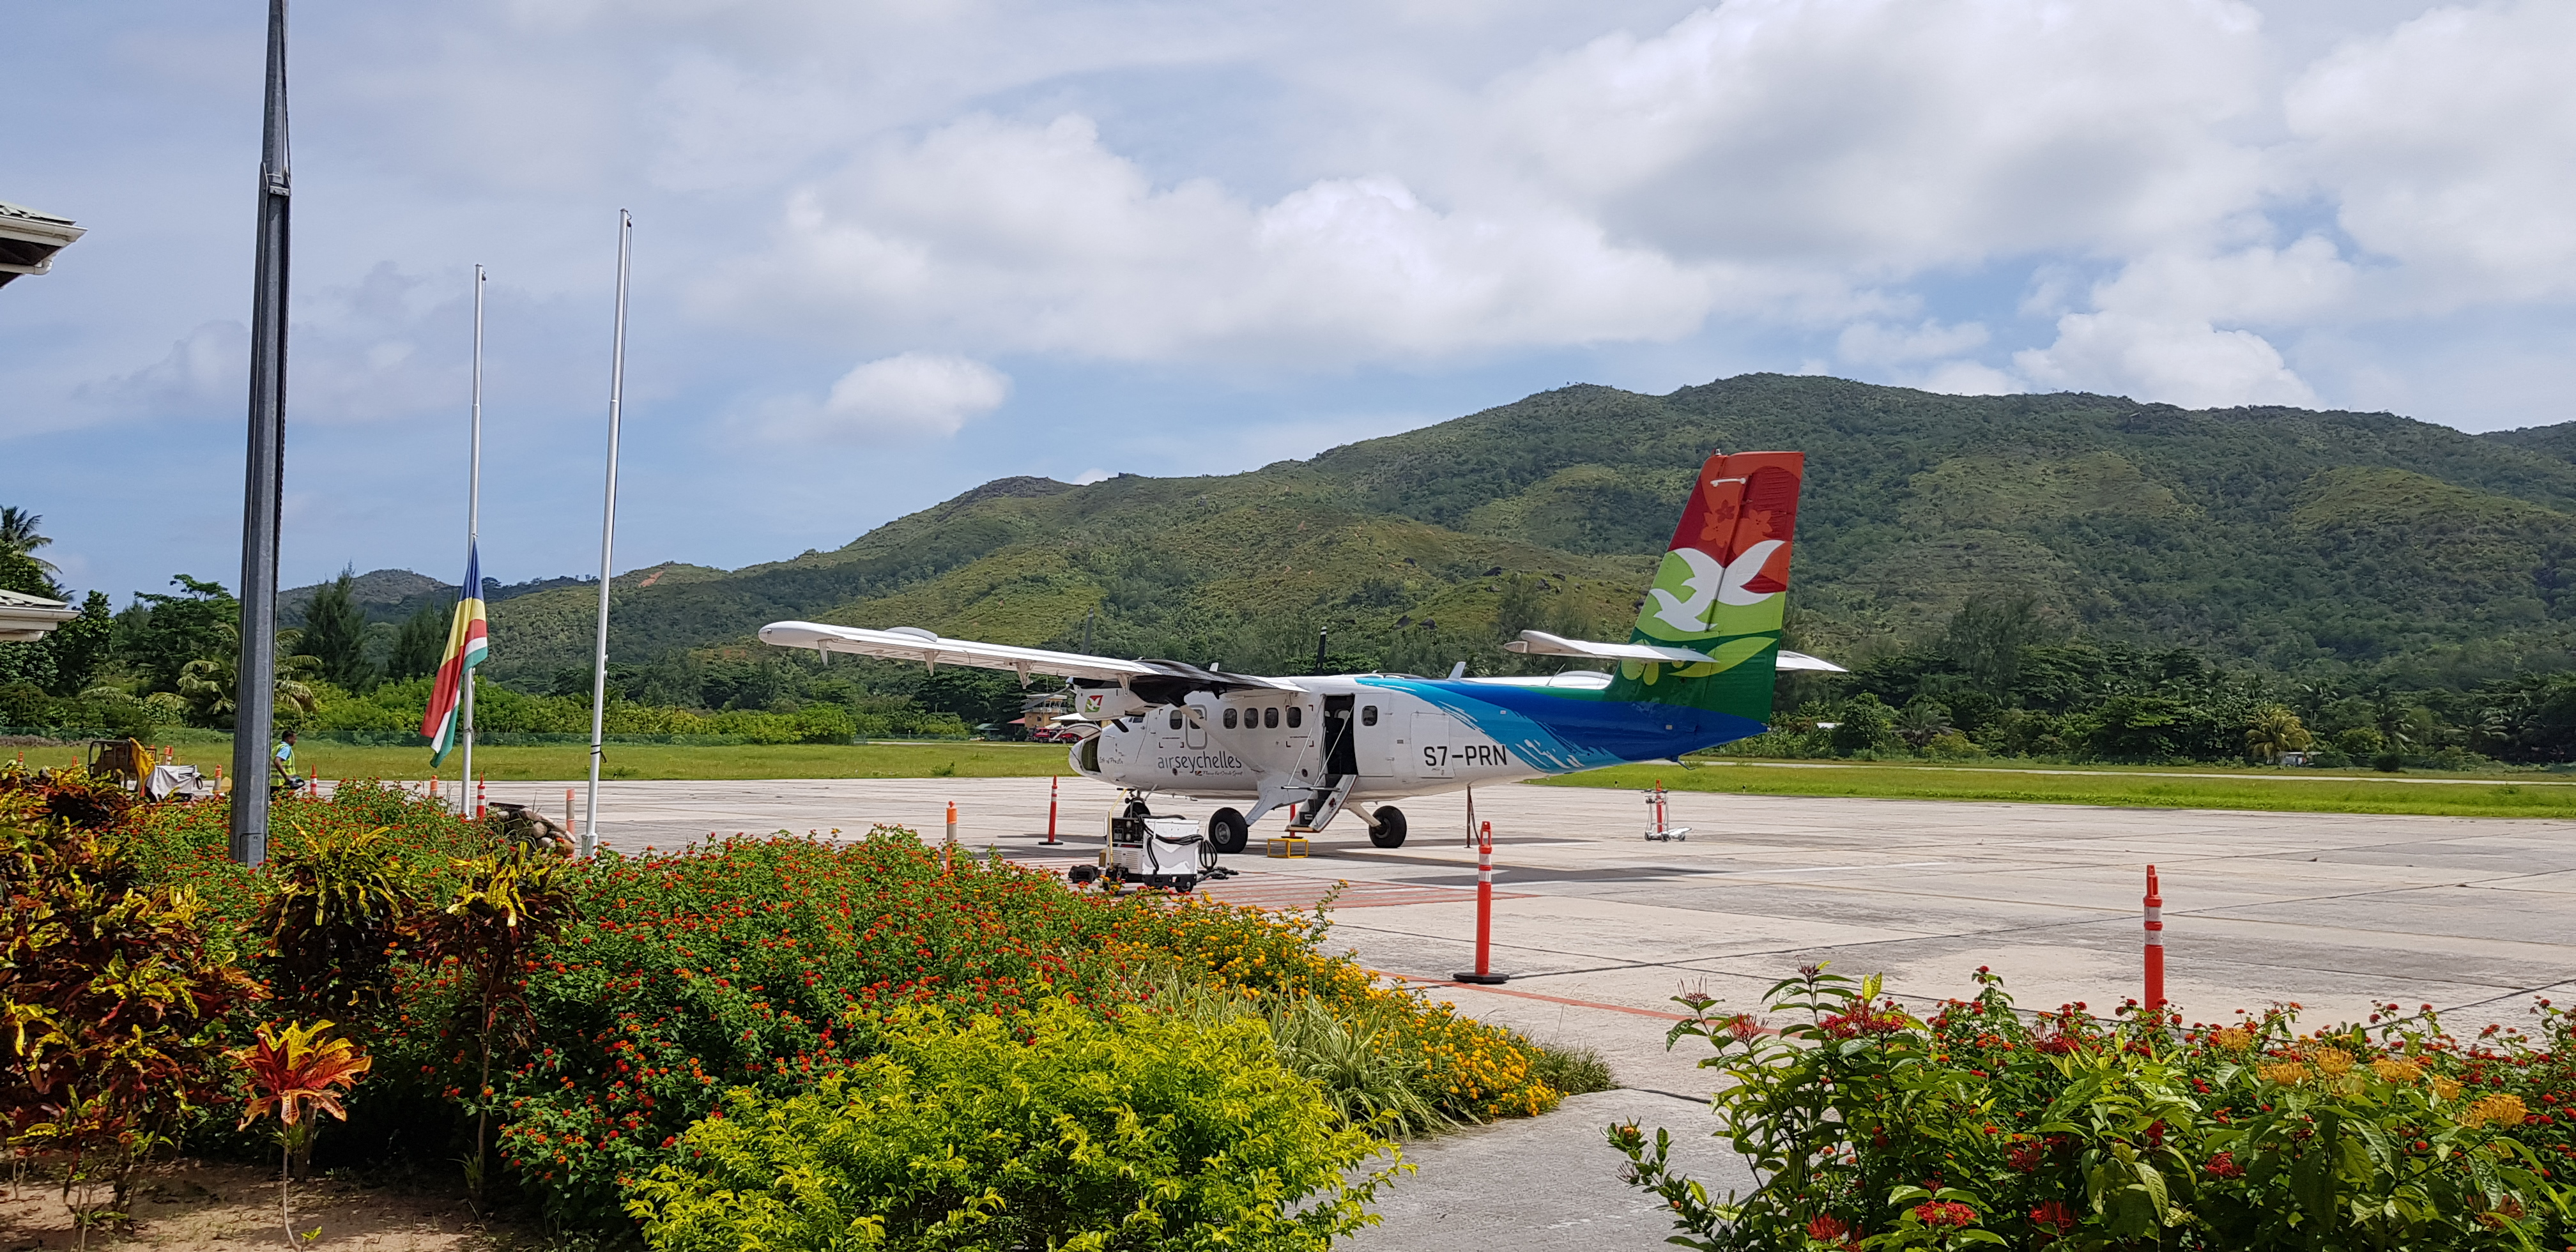 Arrivals at Praslin Airport